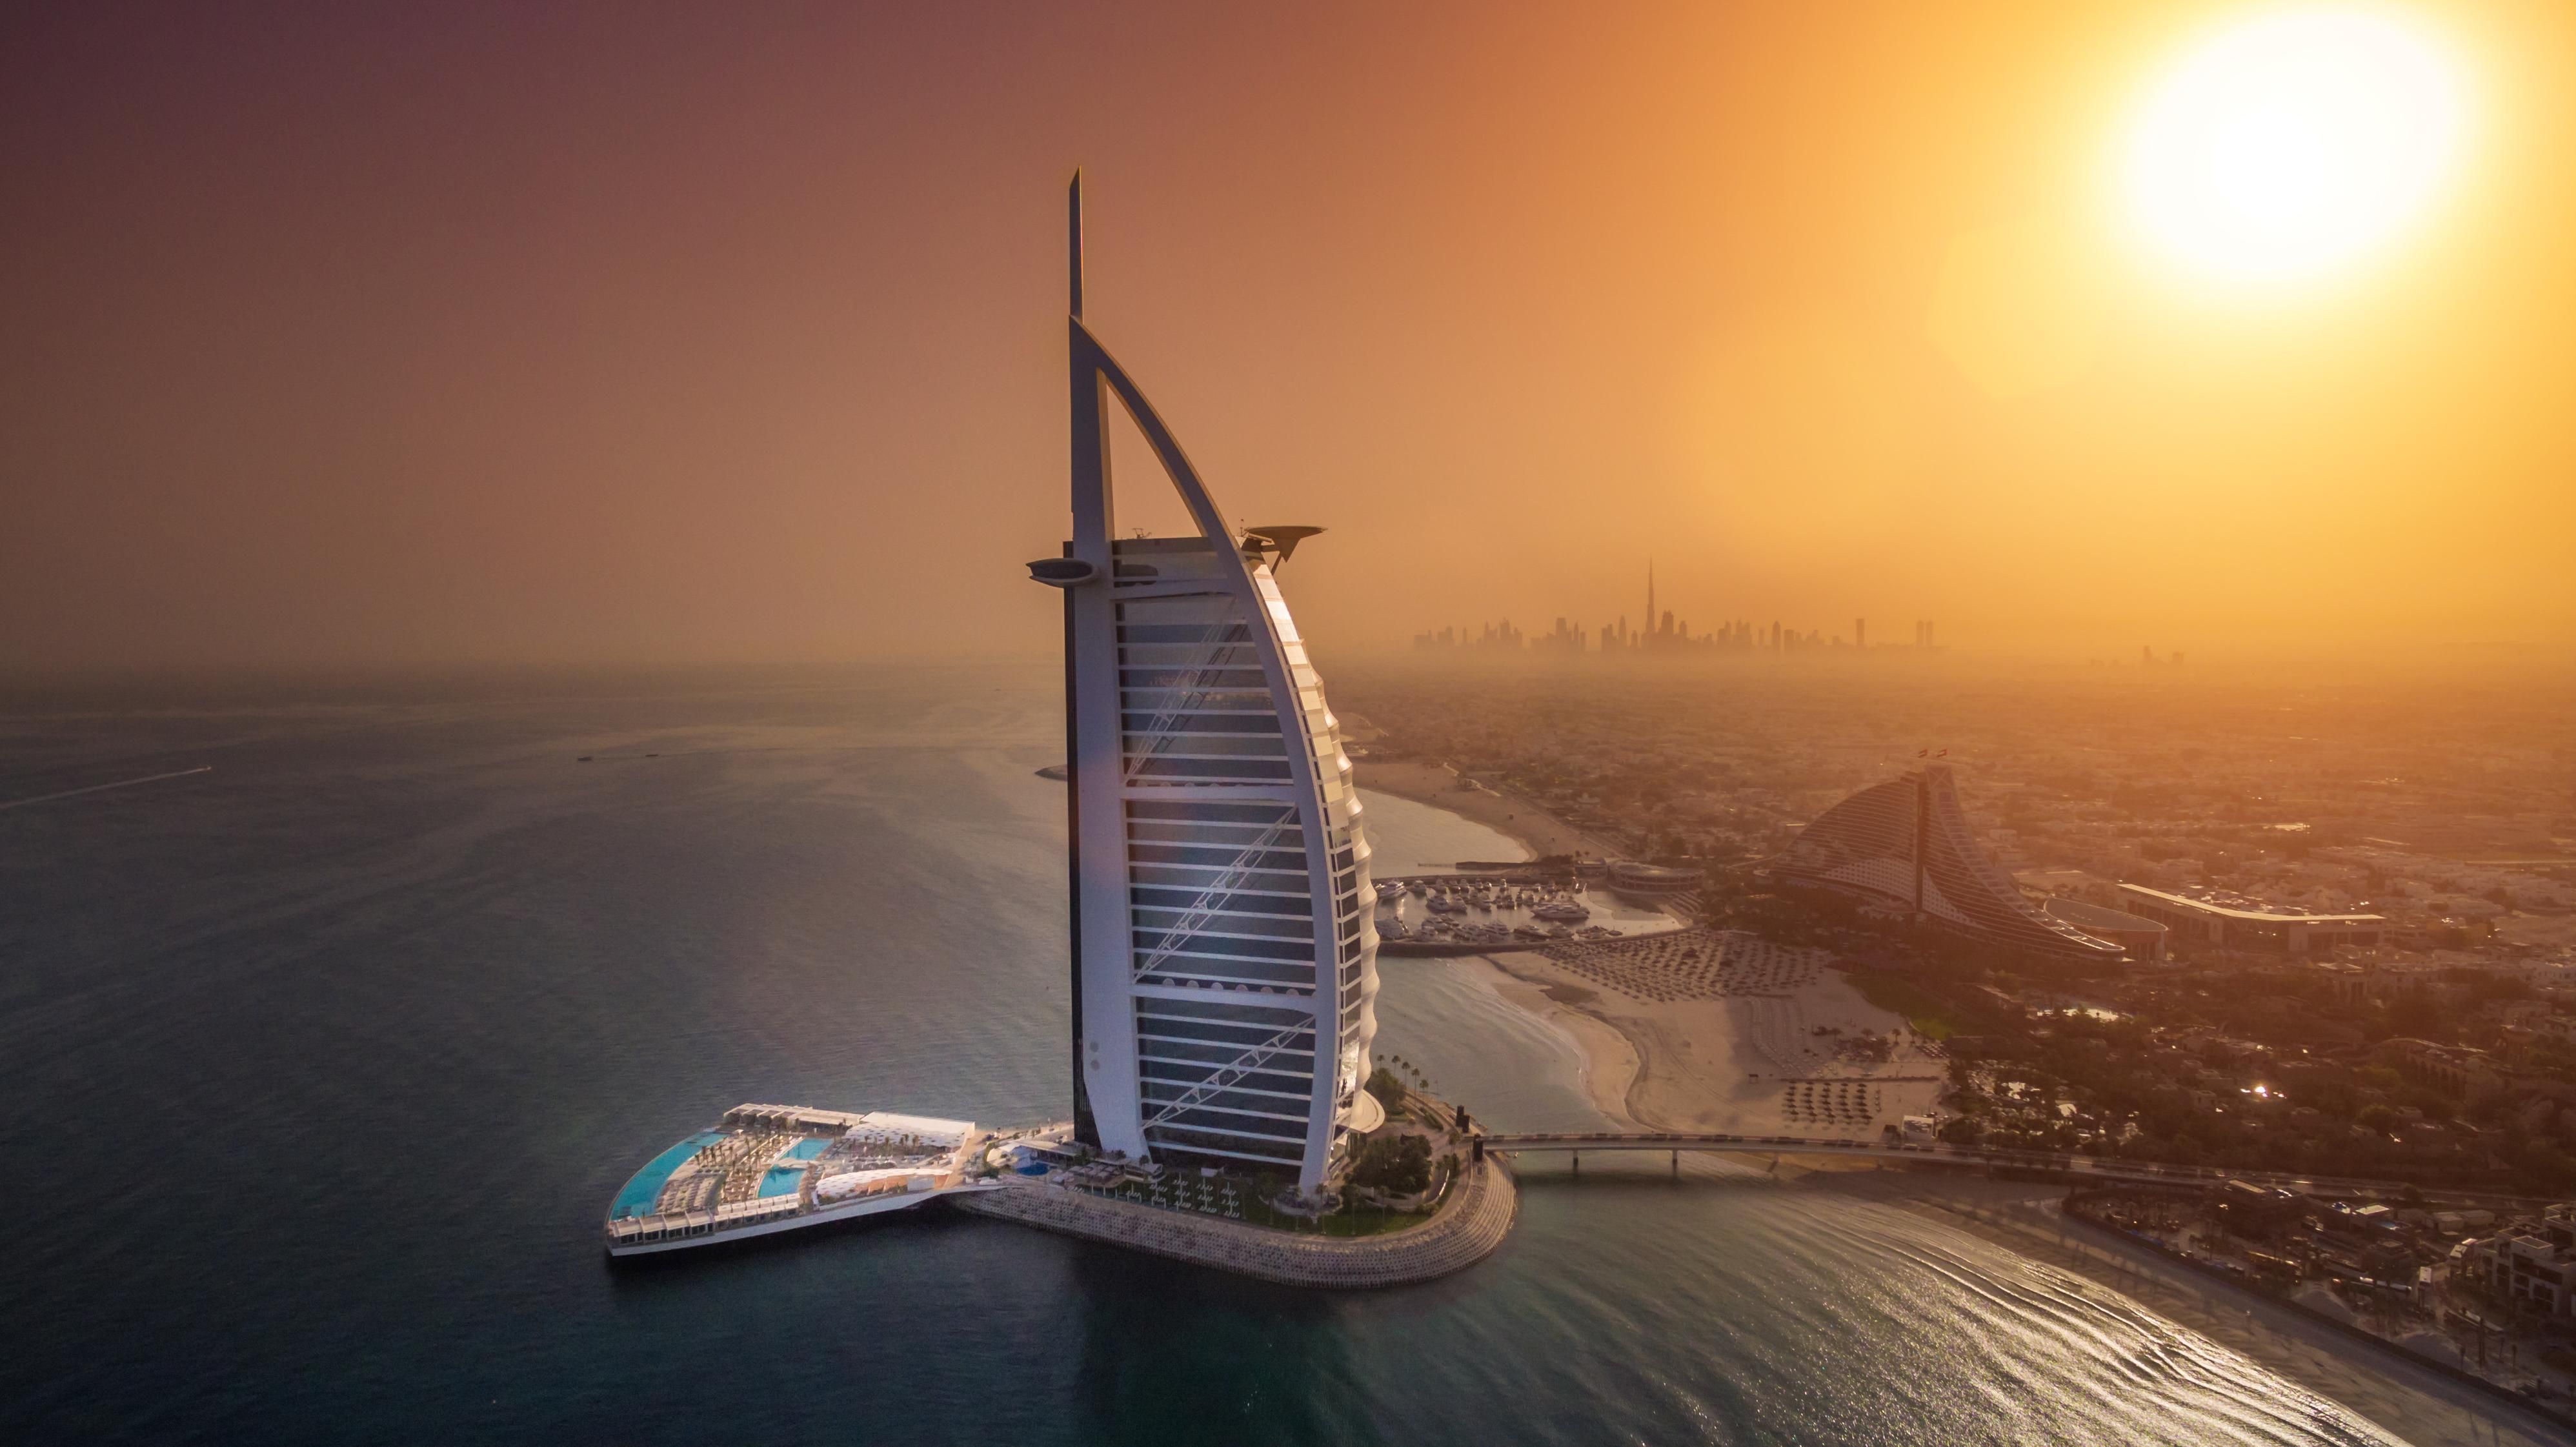 Burj Al Arab Dubai, Burj Al Arab in Dubai Opens Innovate Luxury Outdoor Terrace